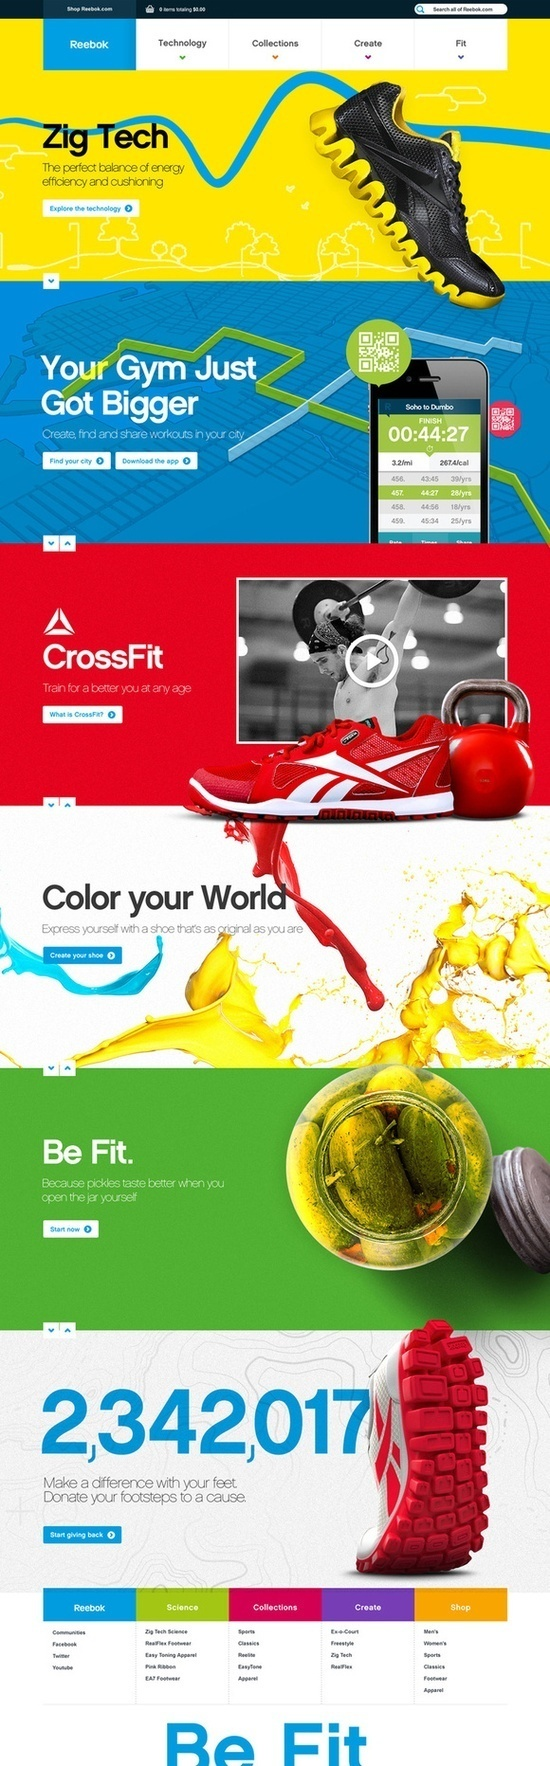 Reebok #user #page #design #interface #one #web #3d